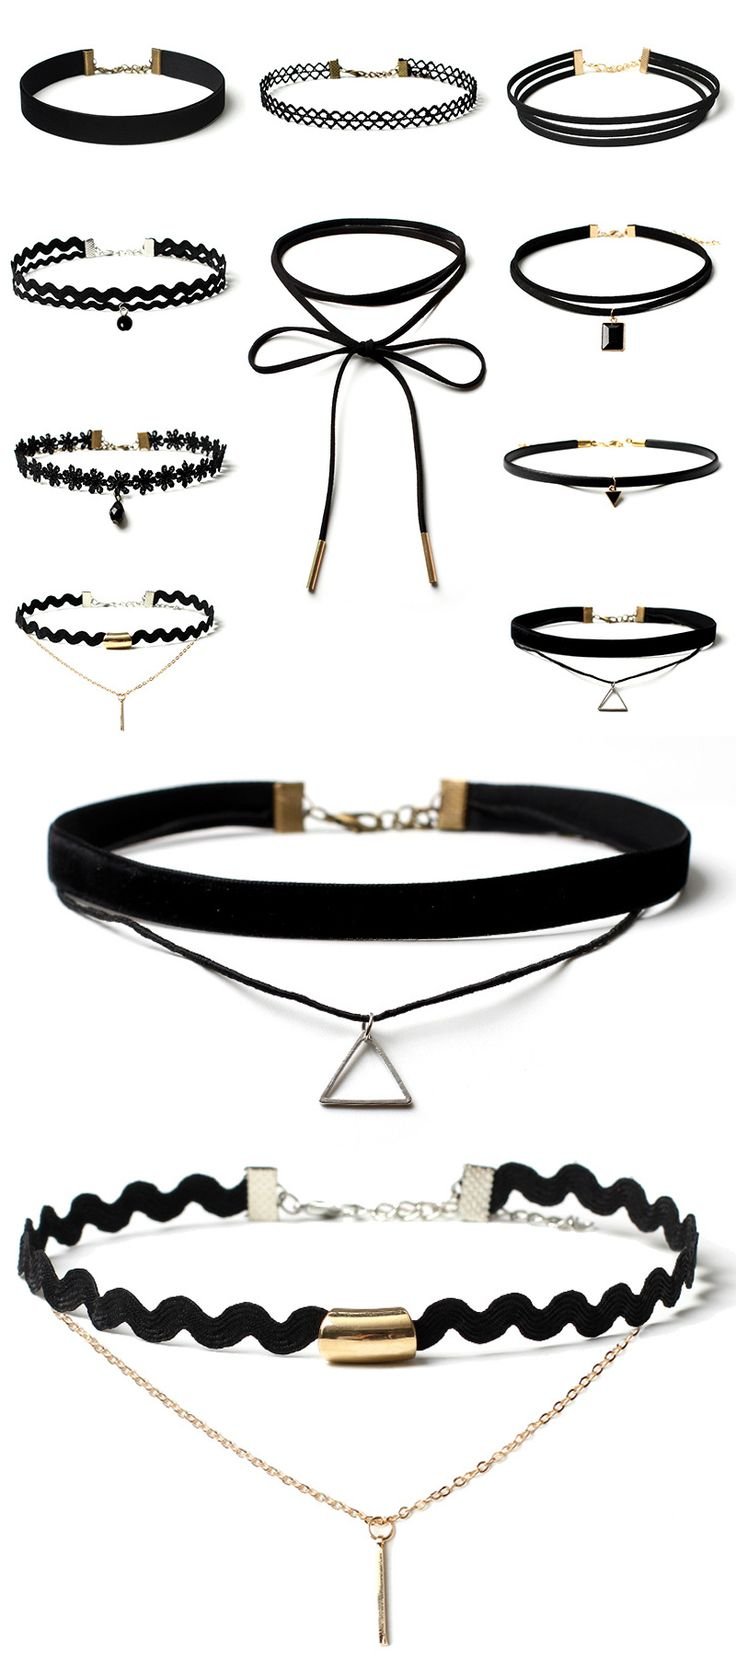 Here We have Gathered Our Favorite Choker Necklaces Into One Sexy 10 Piece Collection.  If you are looking for a really great deal, like literally ten chokers for the price of one, this is definitely for you! Don't forget to use code PIN20 at checkout to save an extra 20% off our already low price of $14.95 with Free Shipping.